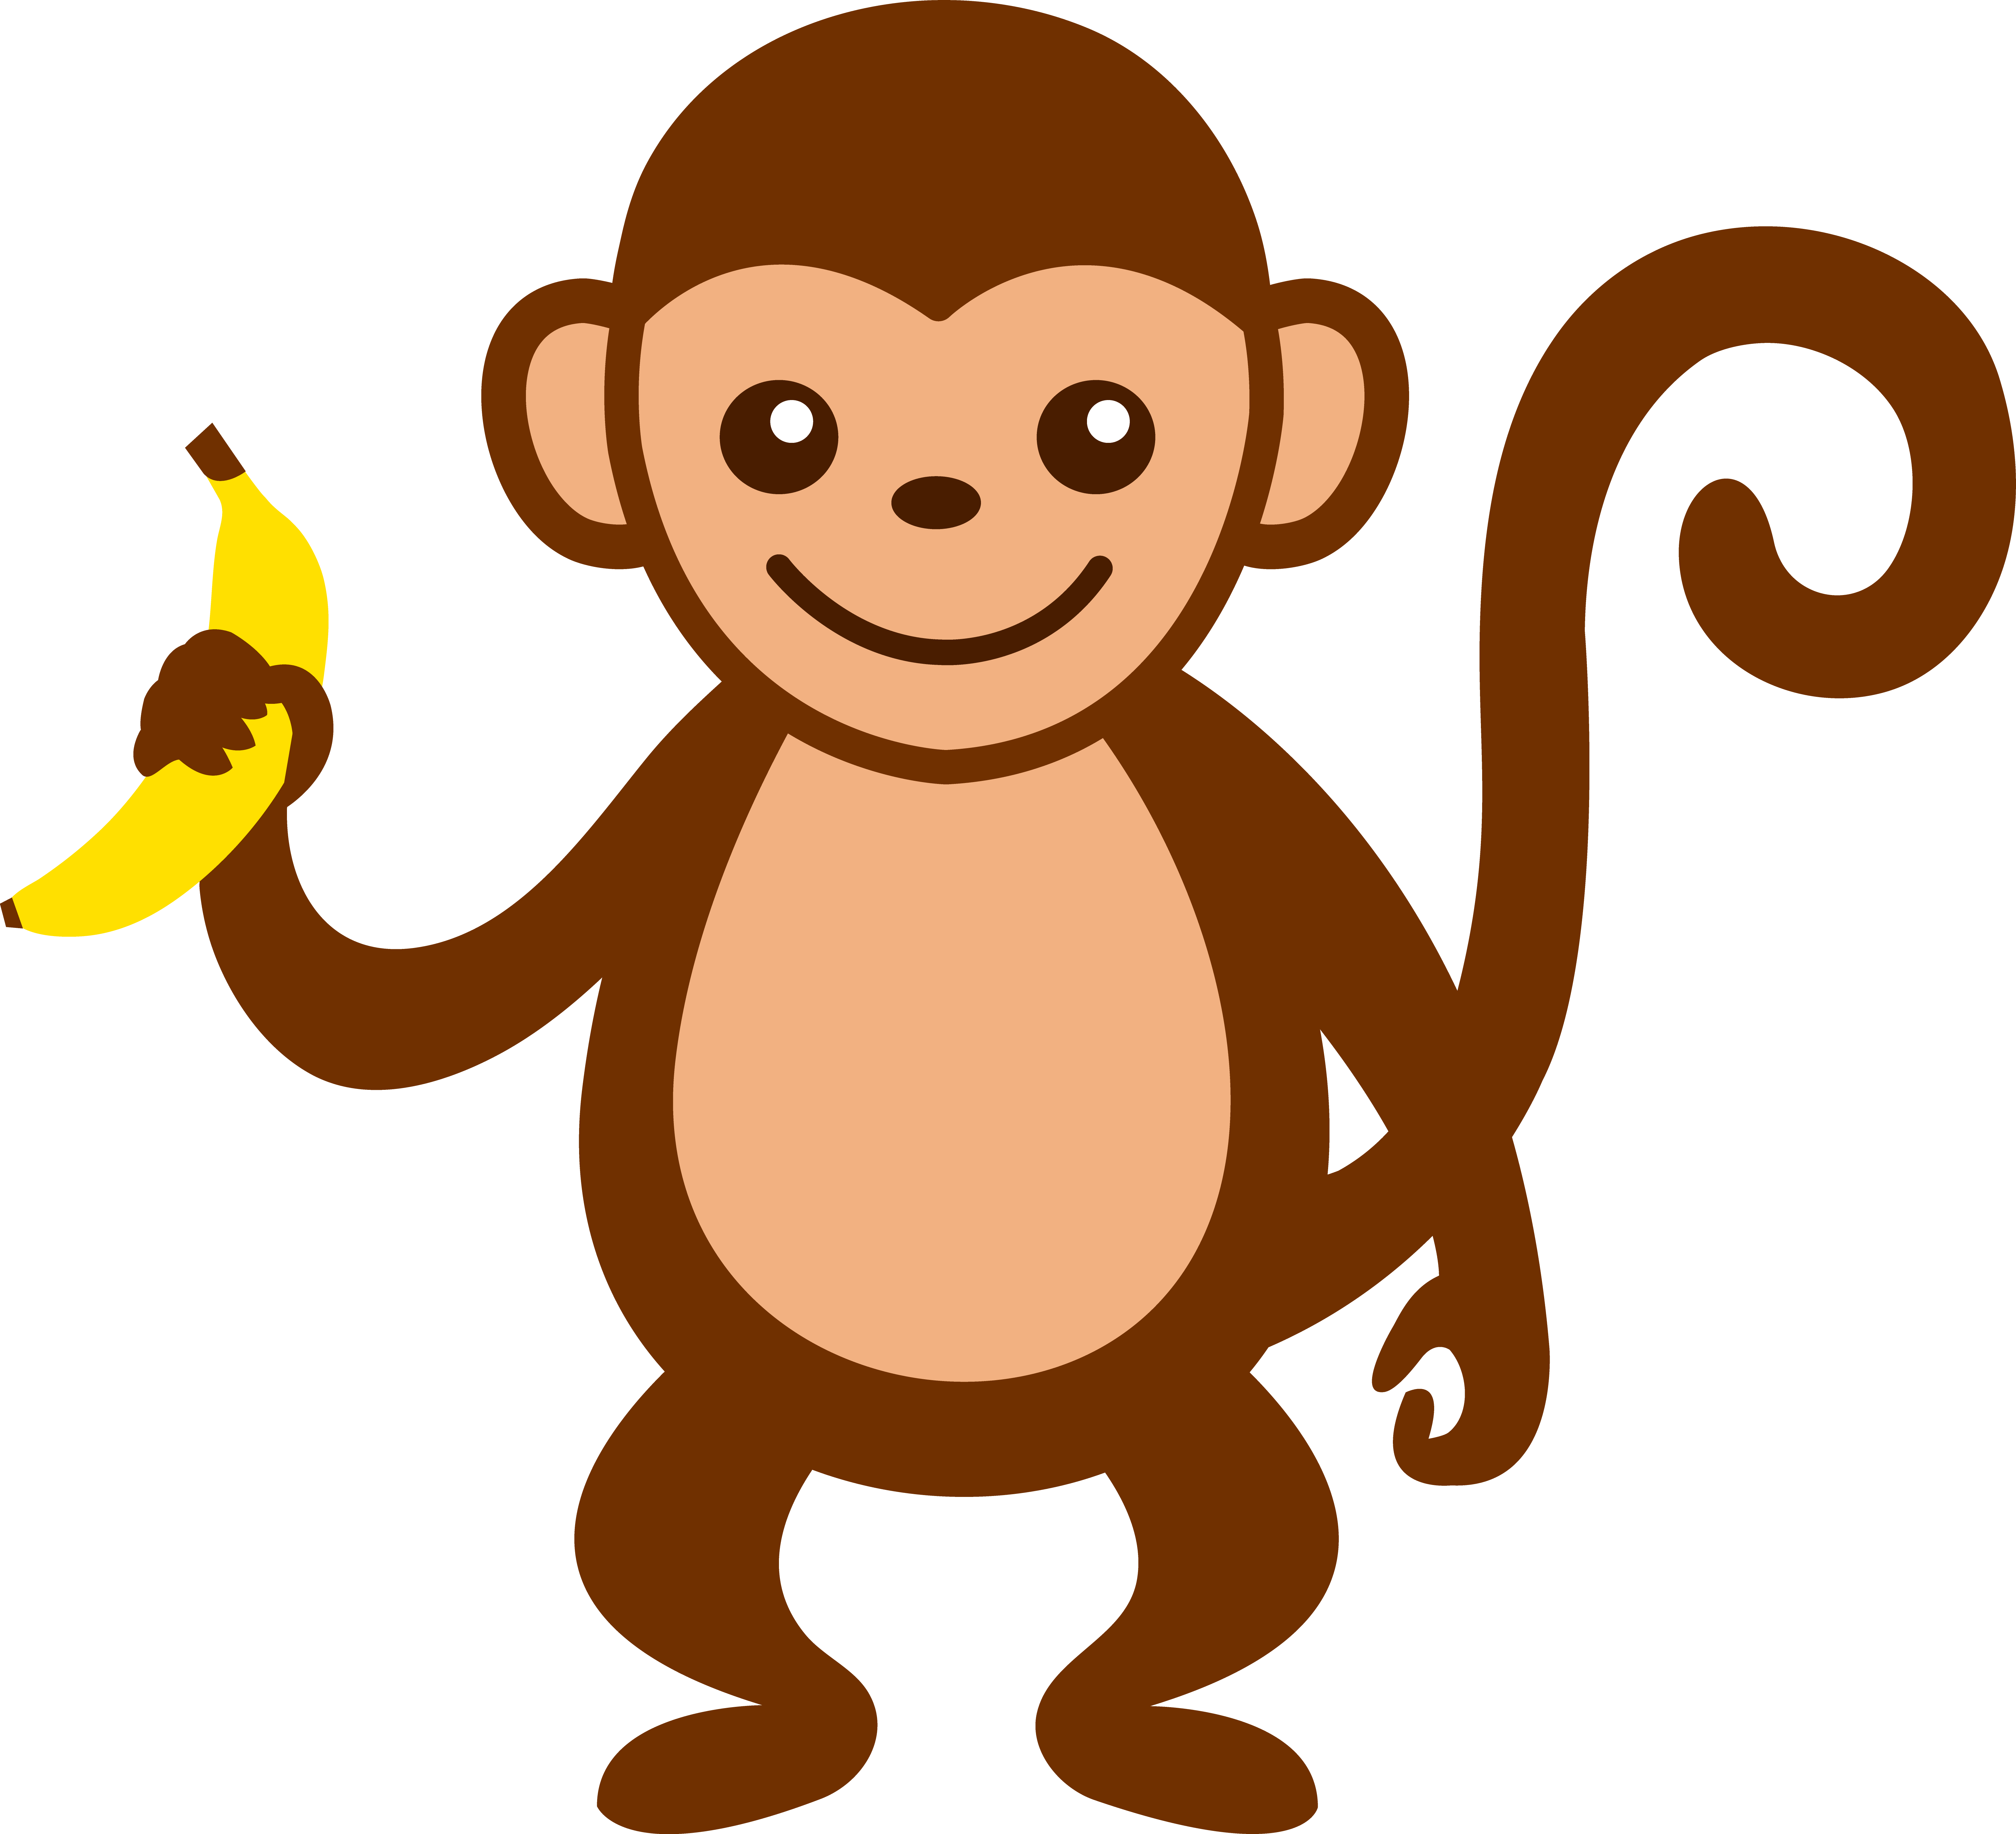 Monkey swinging from tree clipart picture library library Swinging Monkey Clipart | Clipart Panda - Free Clipart Images picture library library